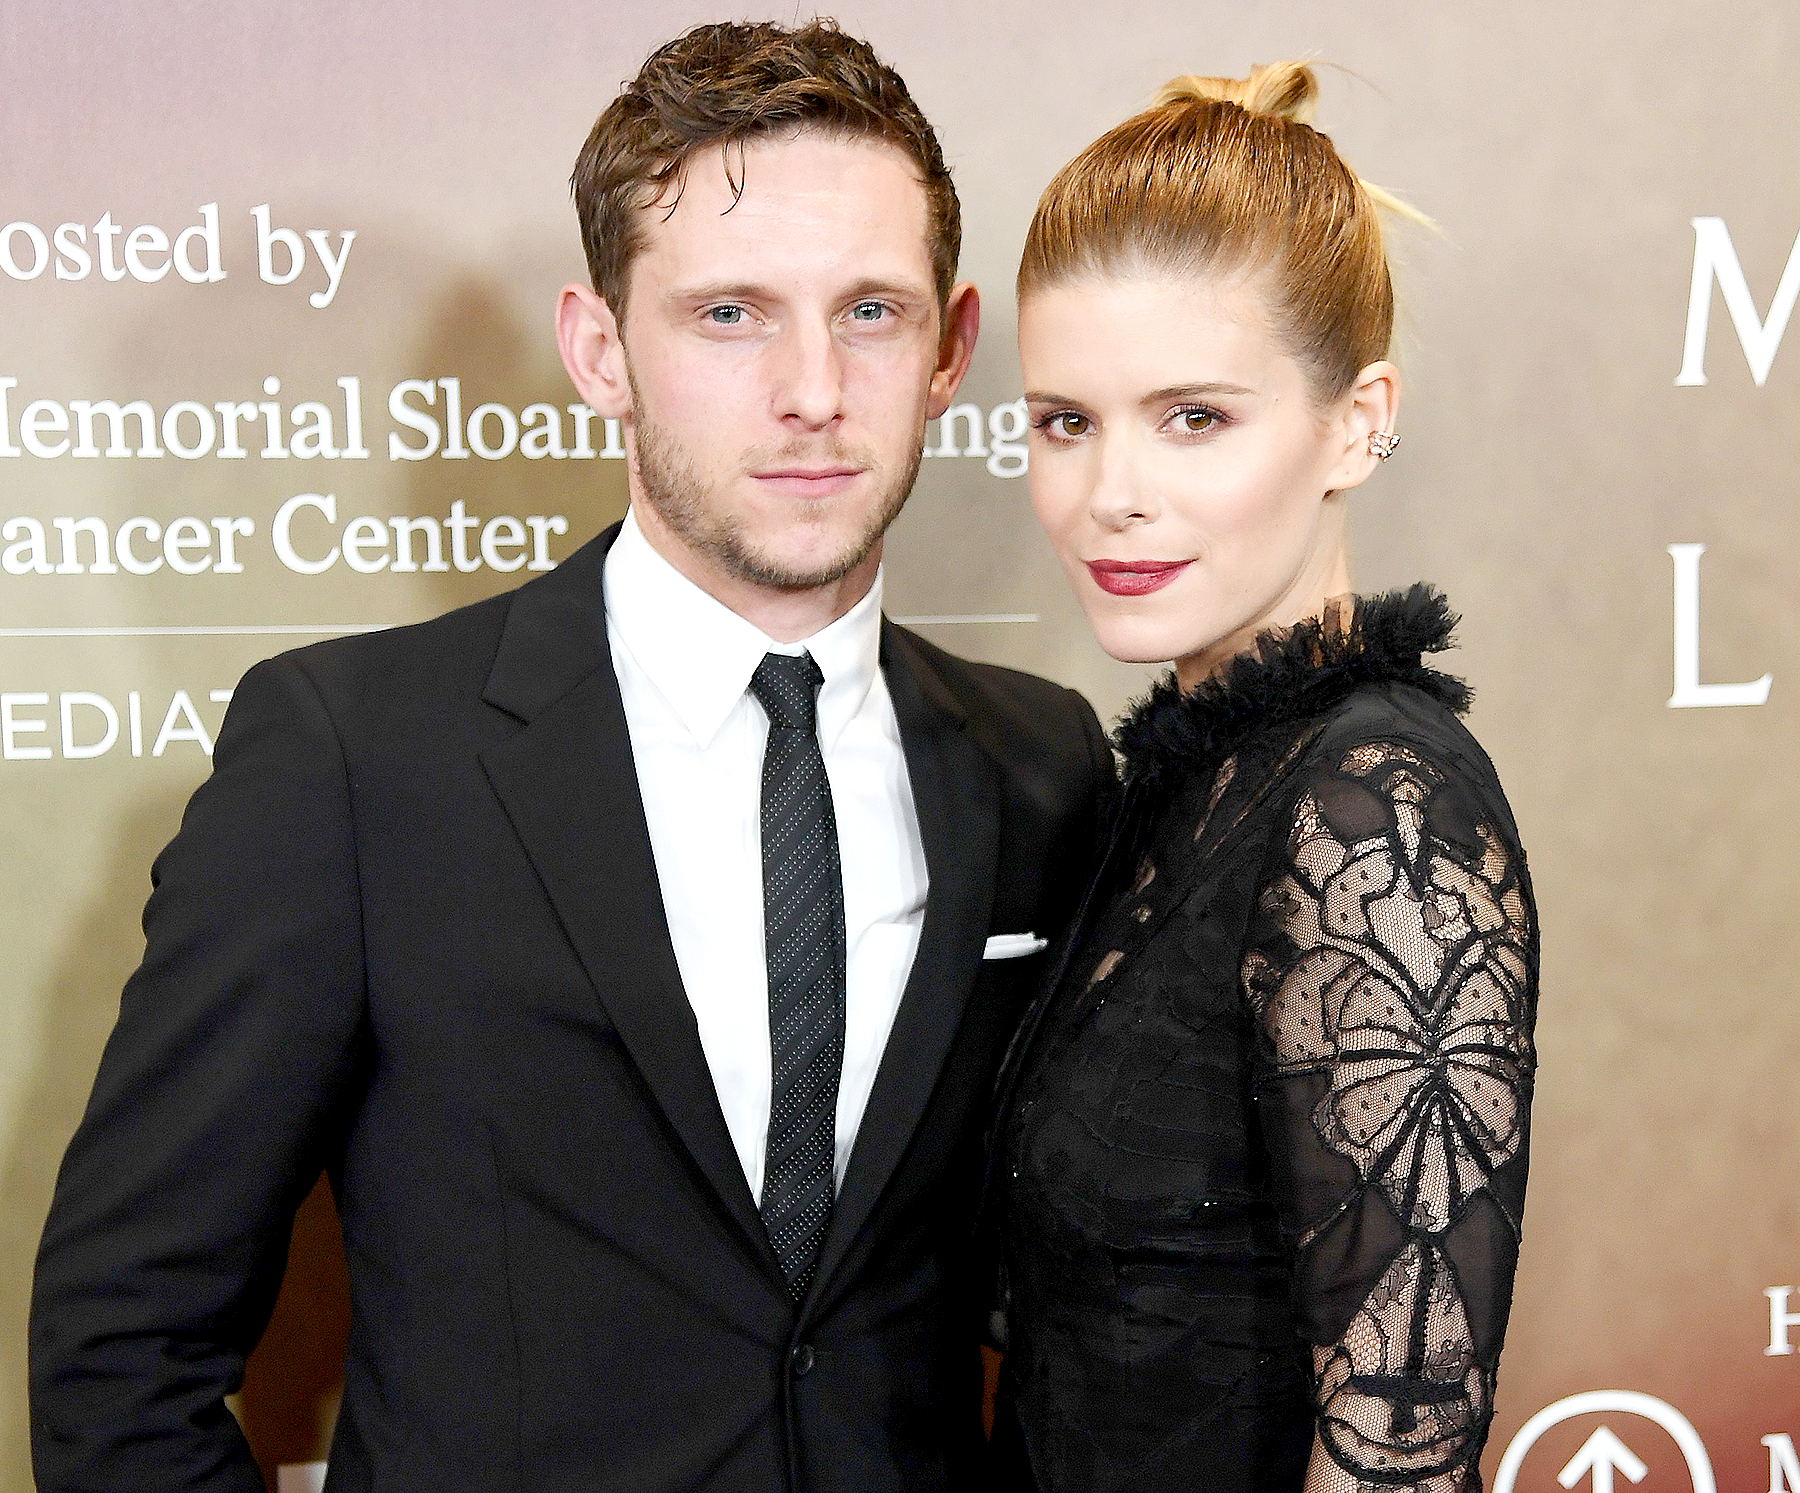 Jamie Bell and Kate Mara attend the 'Megan Leavey' world premiere at Yankee Stadium on June 5, 2017 in the Bronx borough of New York City.